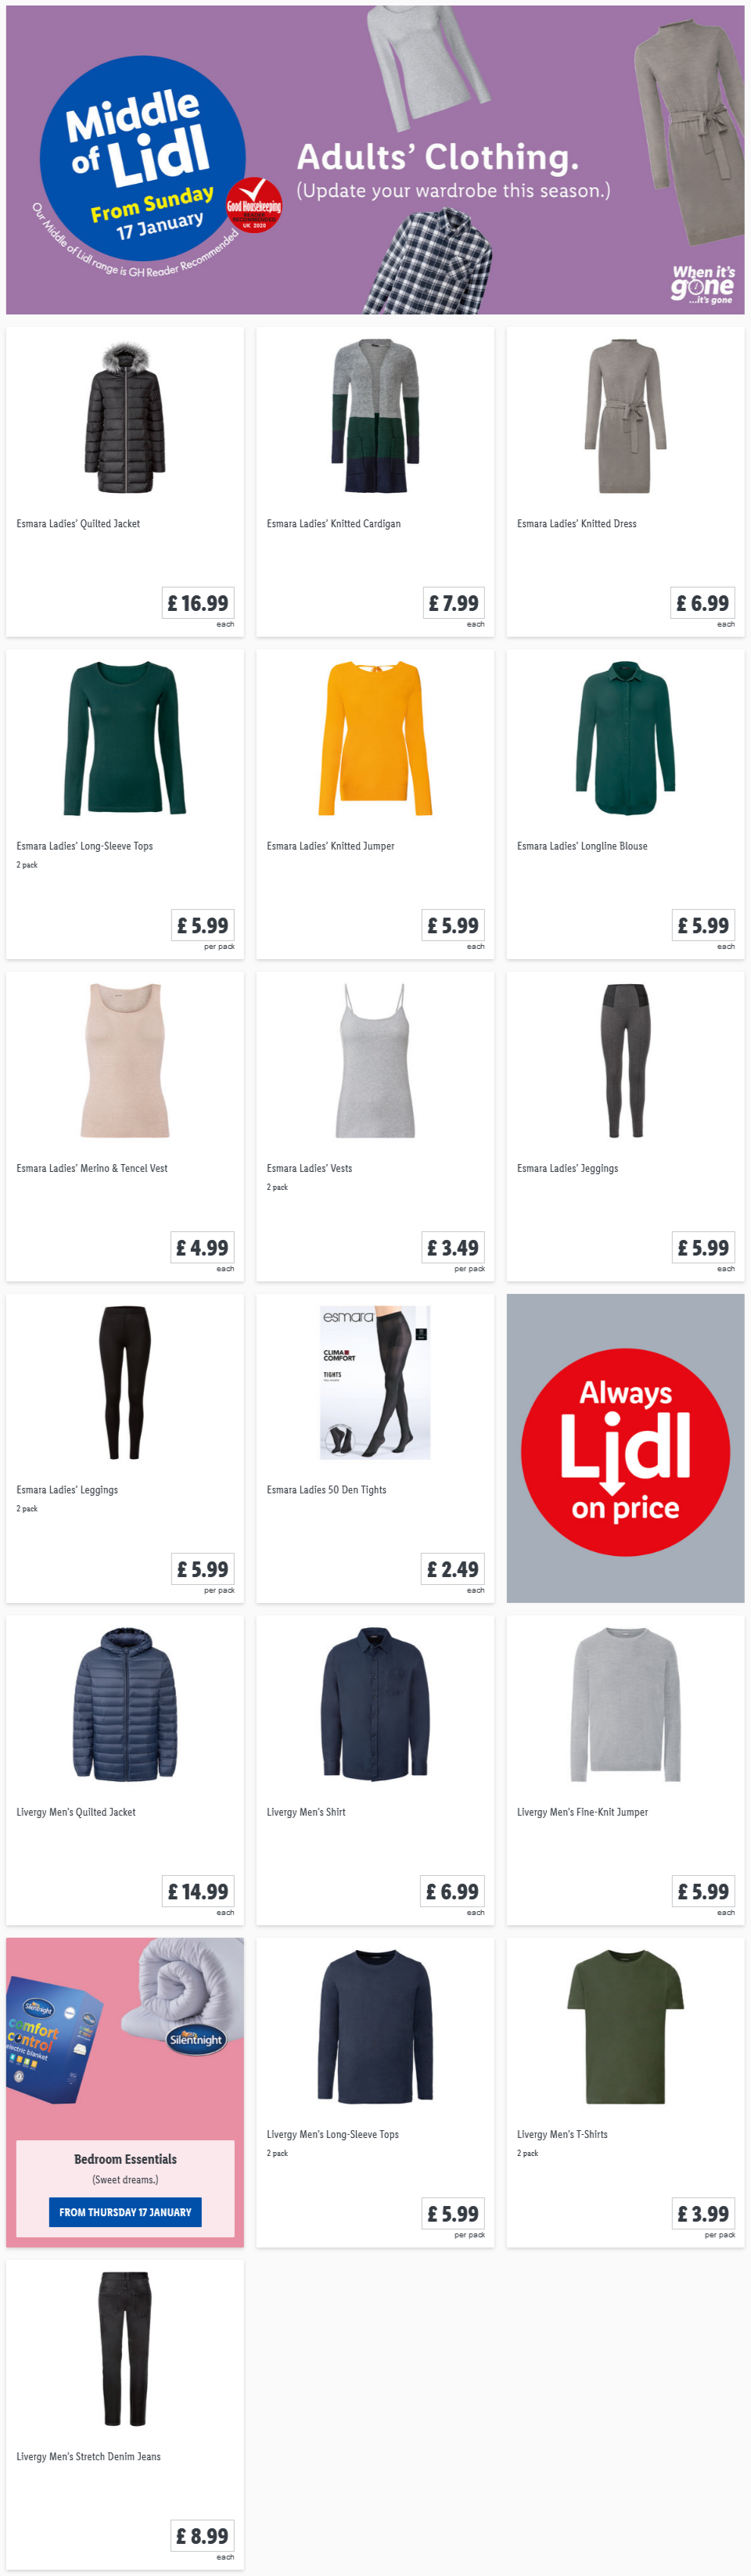 LiDL Adults Clothing from 17th January 2021 LiDL Sunday Offers